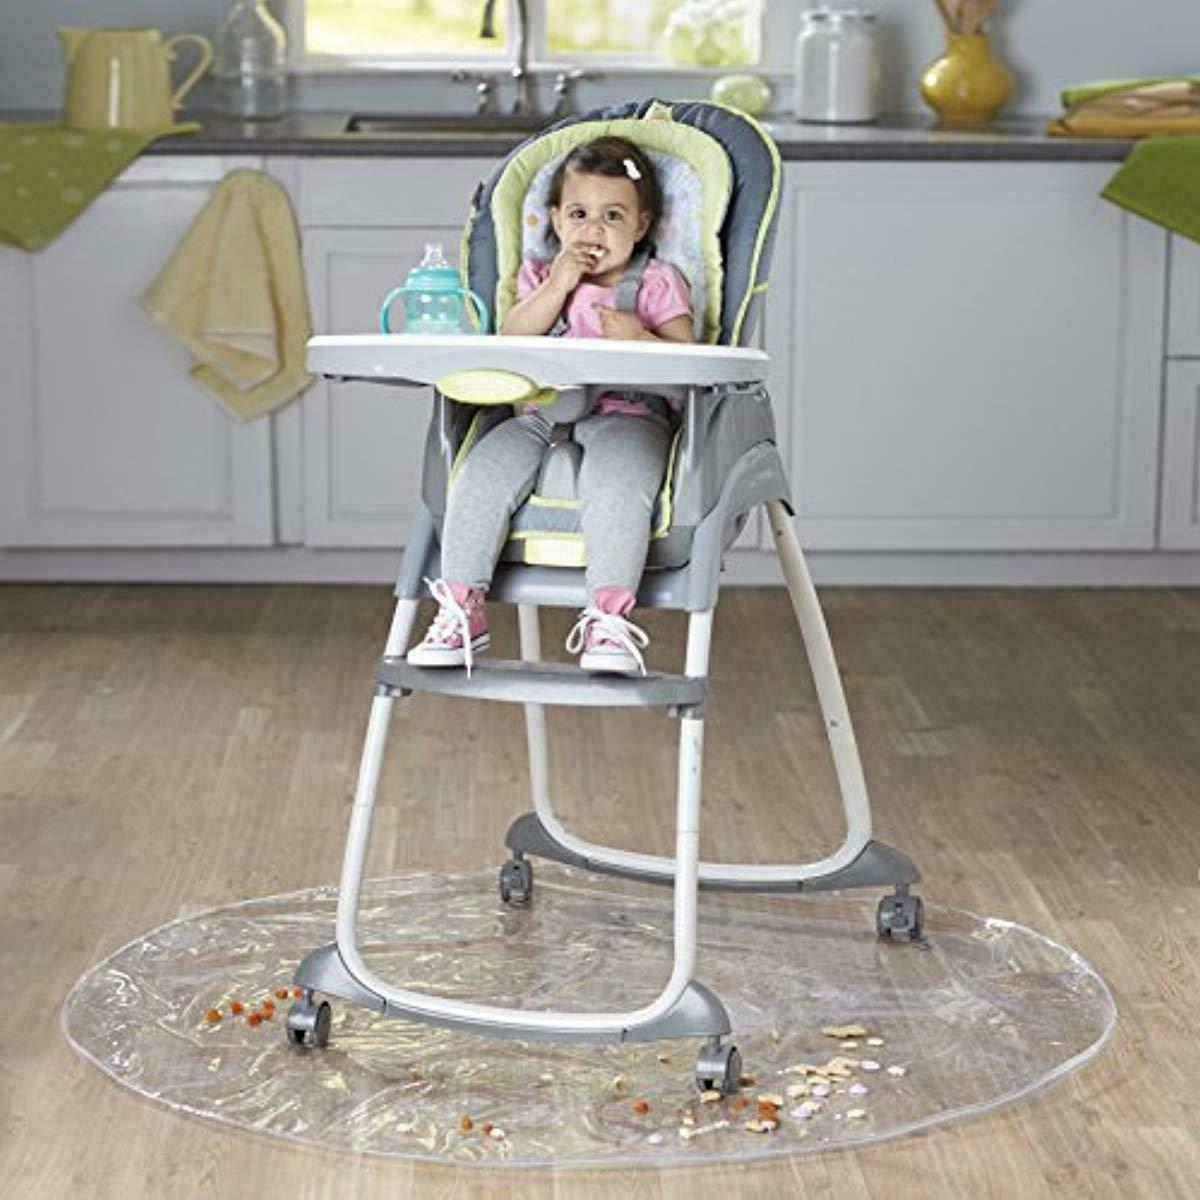 50 Baby Chair Infant Toddler Feeding Floor Protector Clear